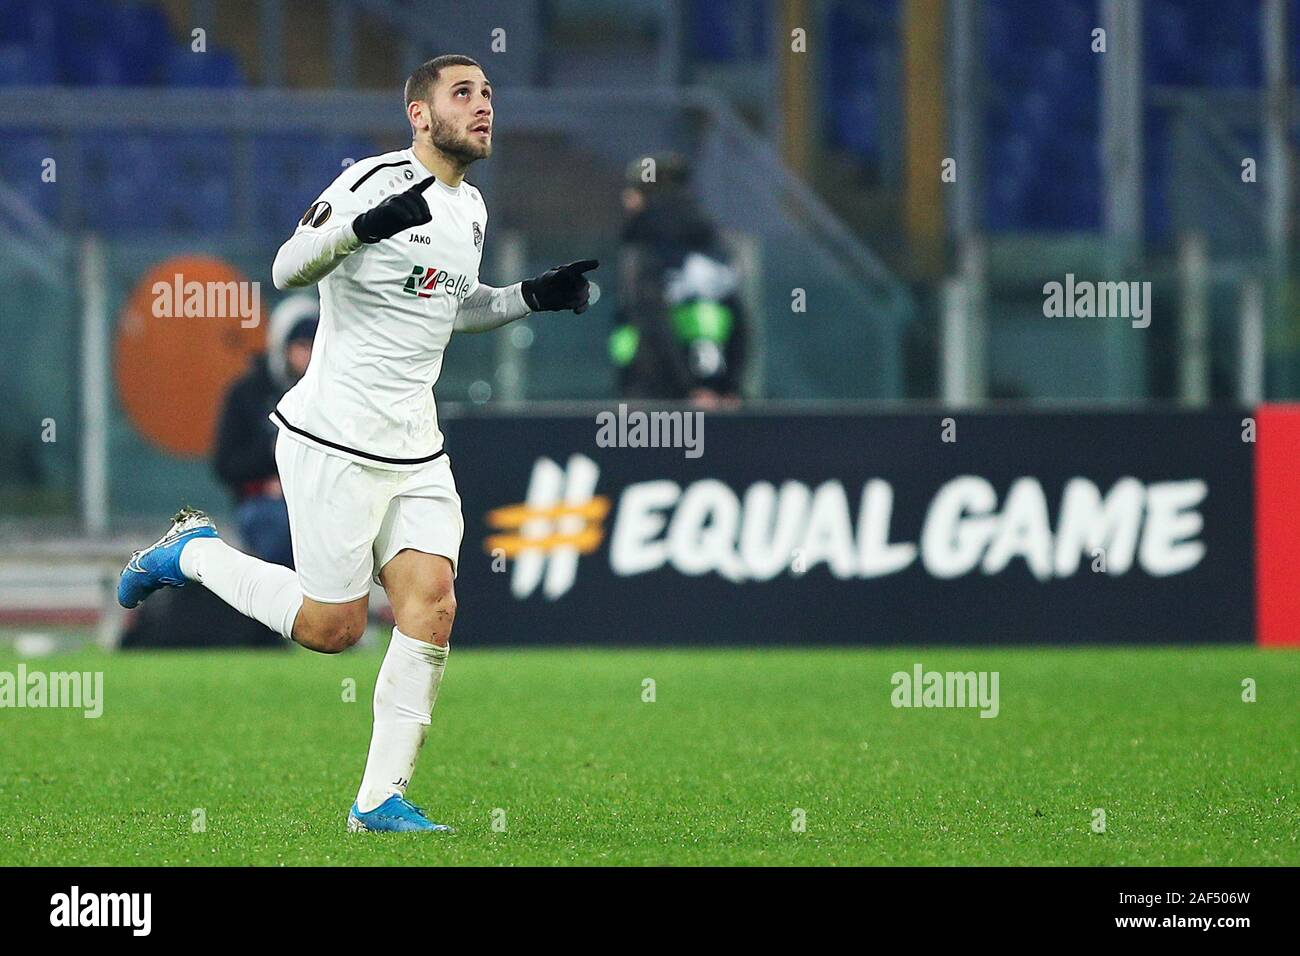 Shon Weissman of Wolfsberg celebrates after scoring 2-2 goal  during the UEFA Europa League, Group J football match between AS Roma and Wolfsberg AC on December 12, 2019 at Stadio Olimpico in Rome, Italy - Photo Federico Proietti/ESPA-Images Stock Photo